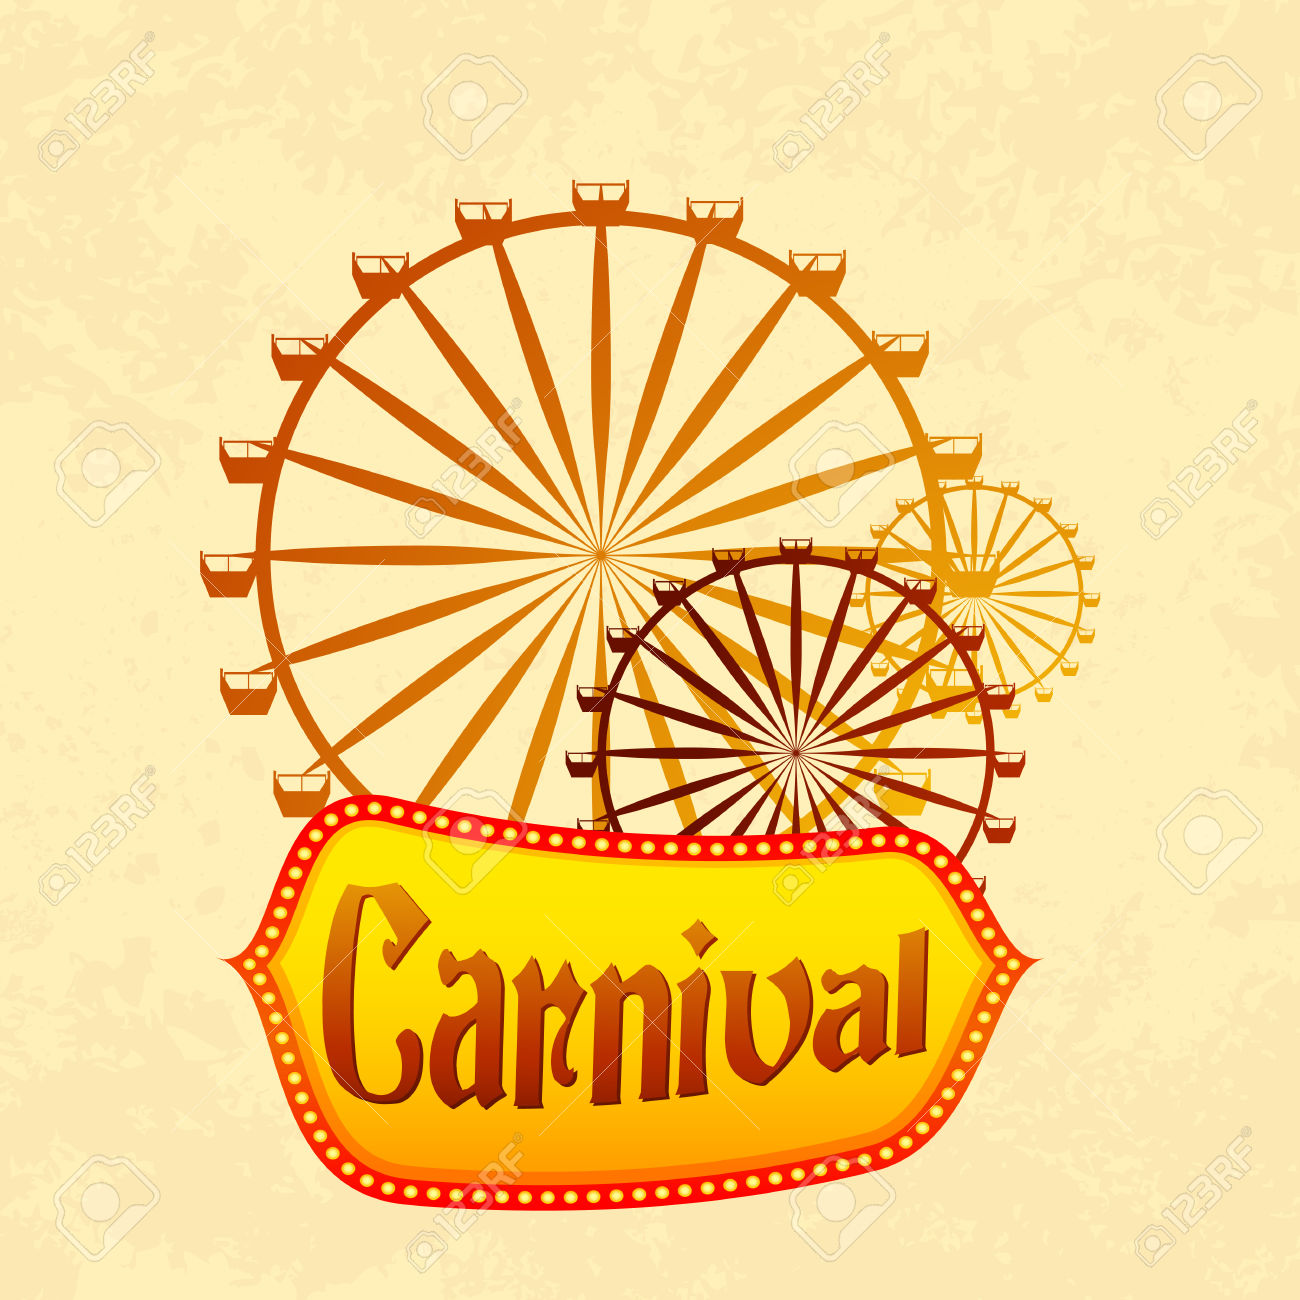 Giant pencil and in. Carnival clipart ferris wheel